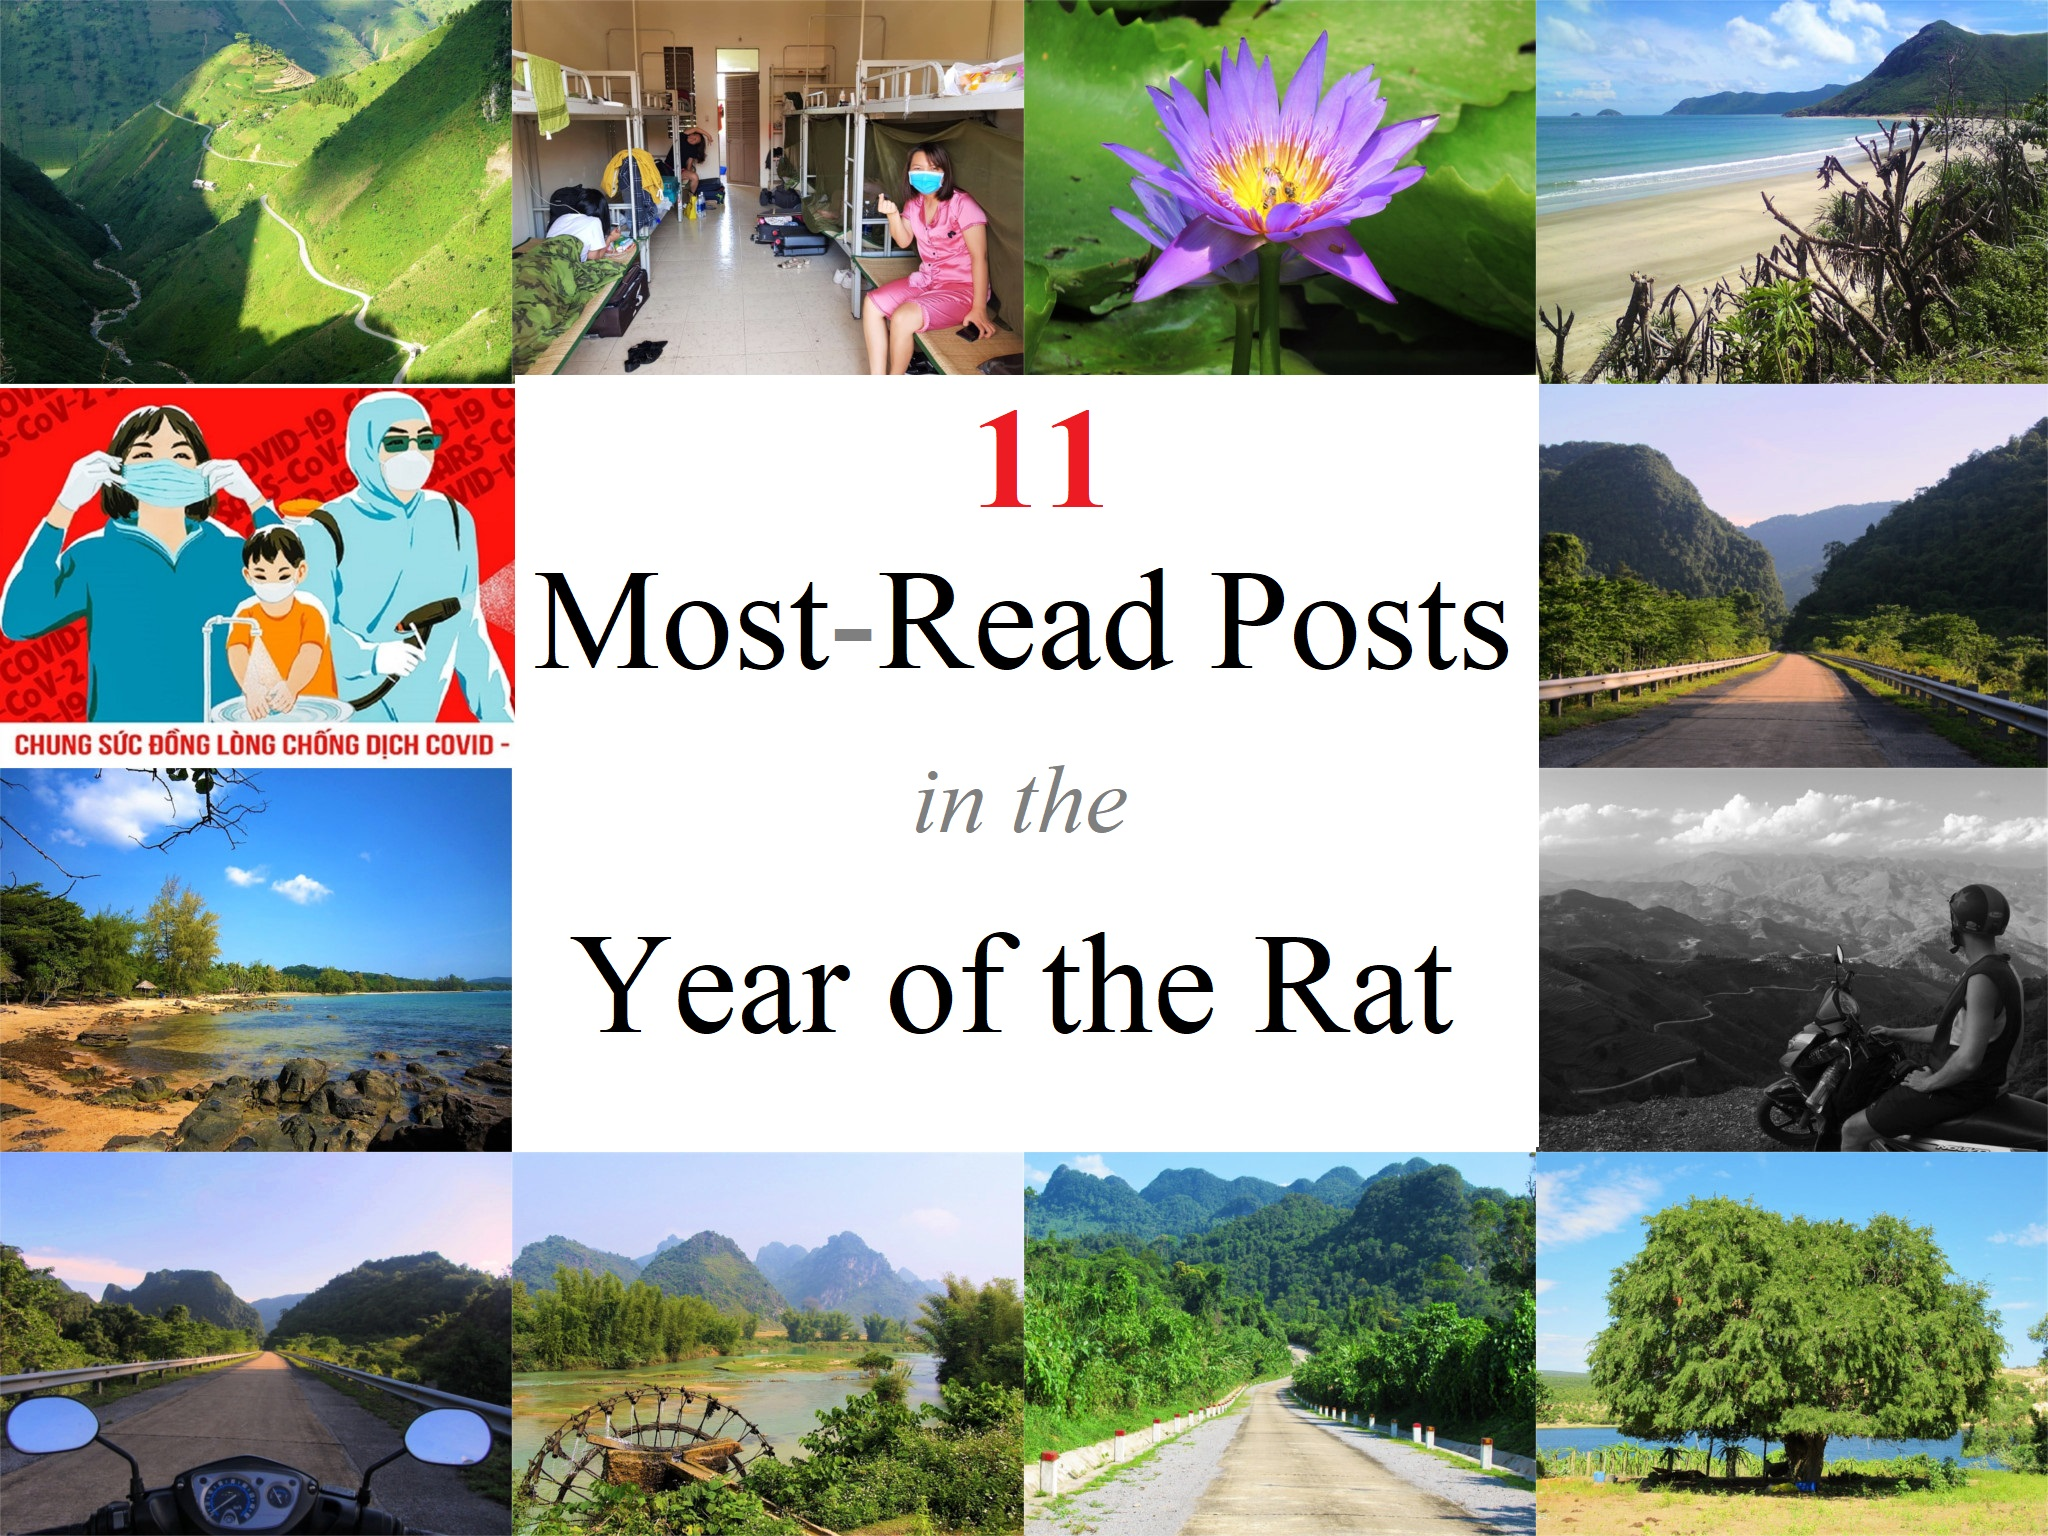 11 Most-Read Posts in the Year of the Rat, Vietnam Coracle, Travel Blog